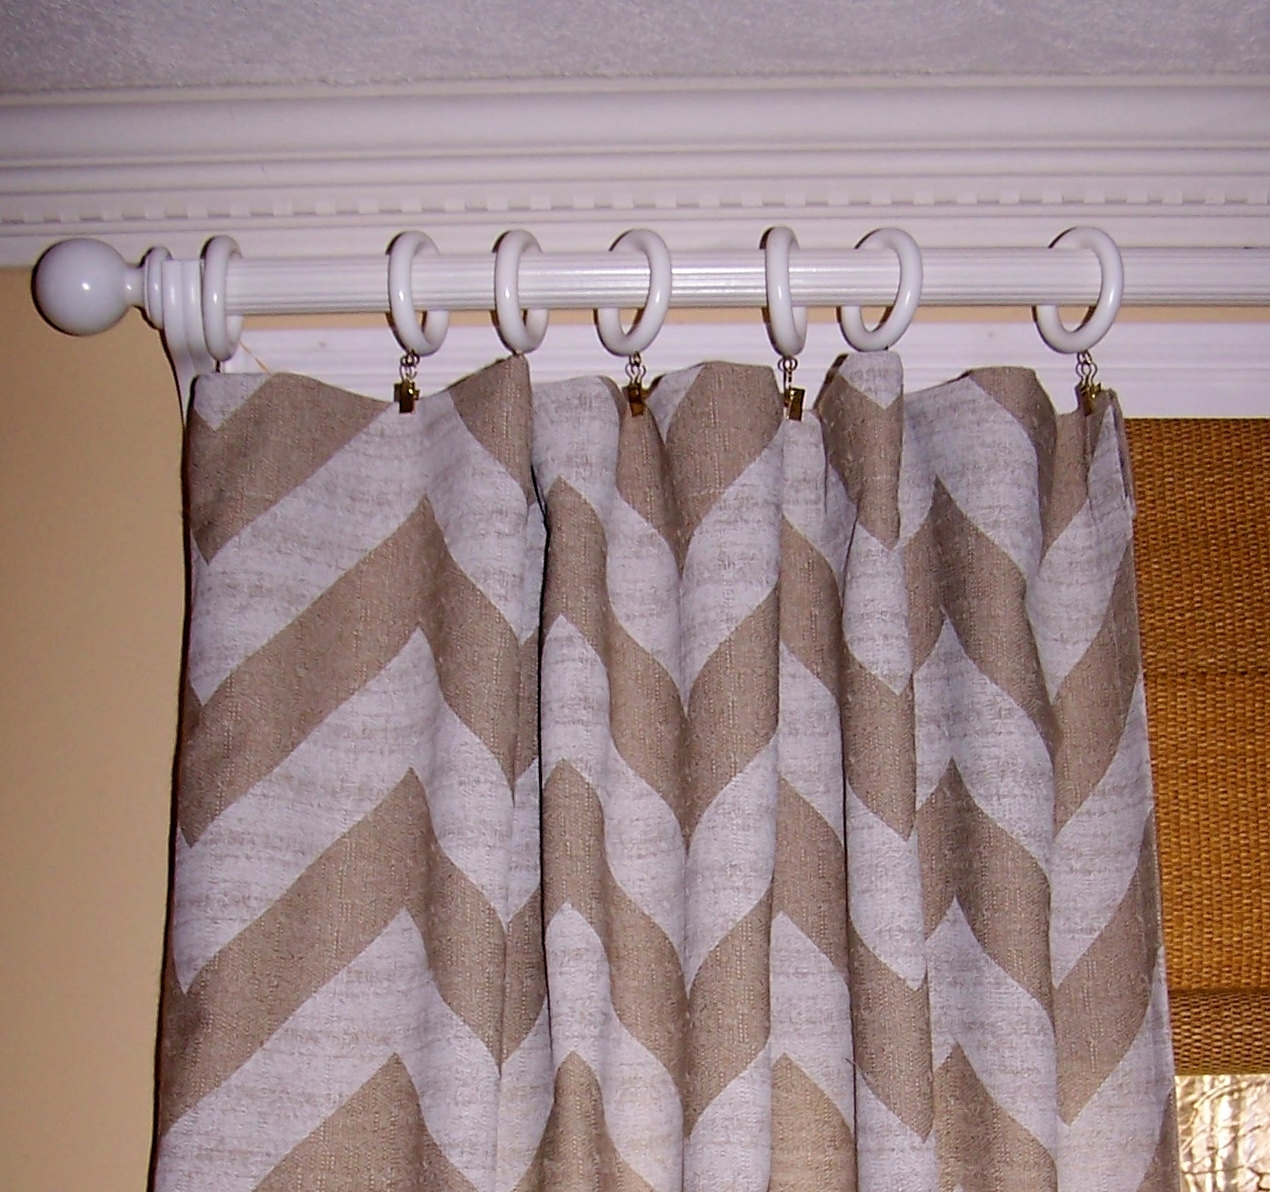 Burlap Curtain Etsy With Regard To Turquoise Burlap Curtains (Image 6 of 15)